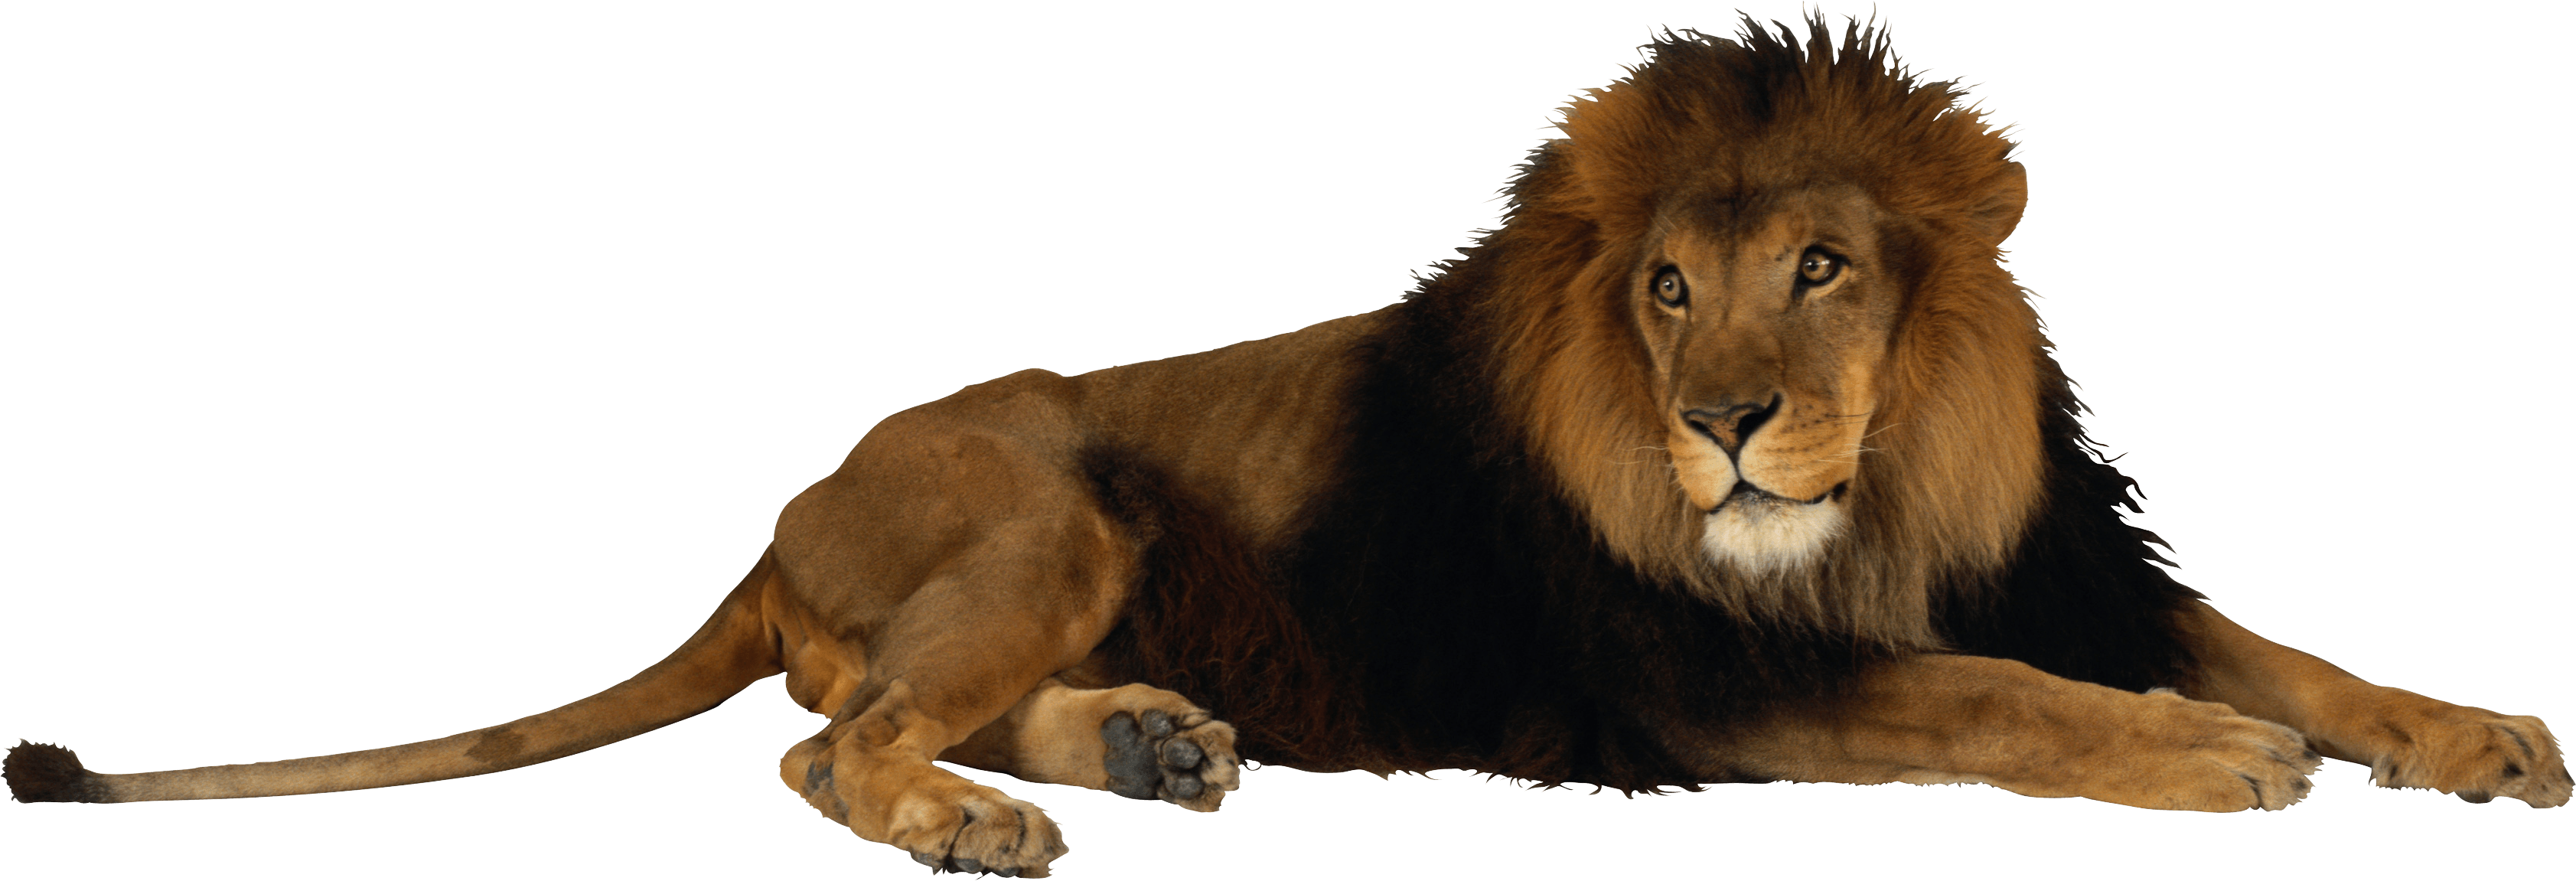 Png image animals animales. Trail clipart lion